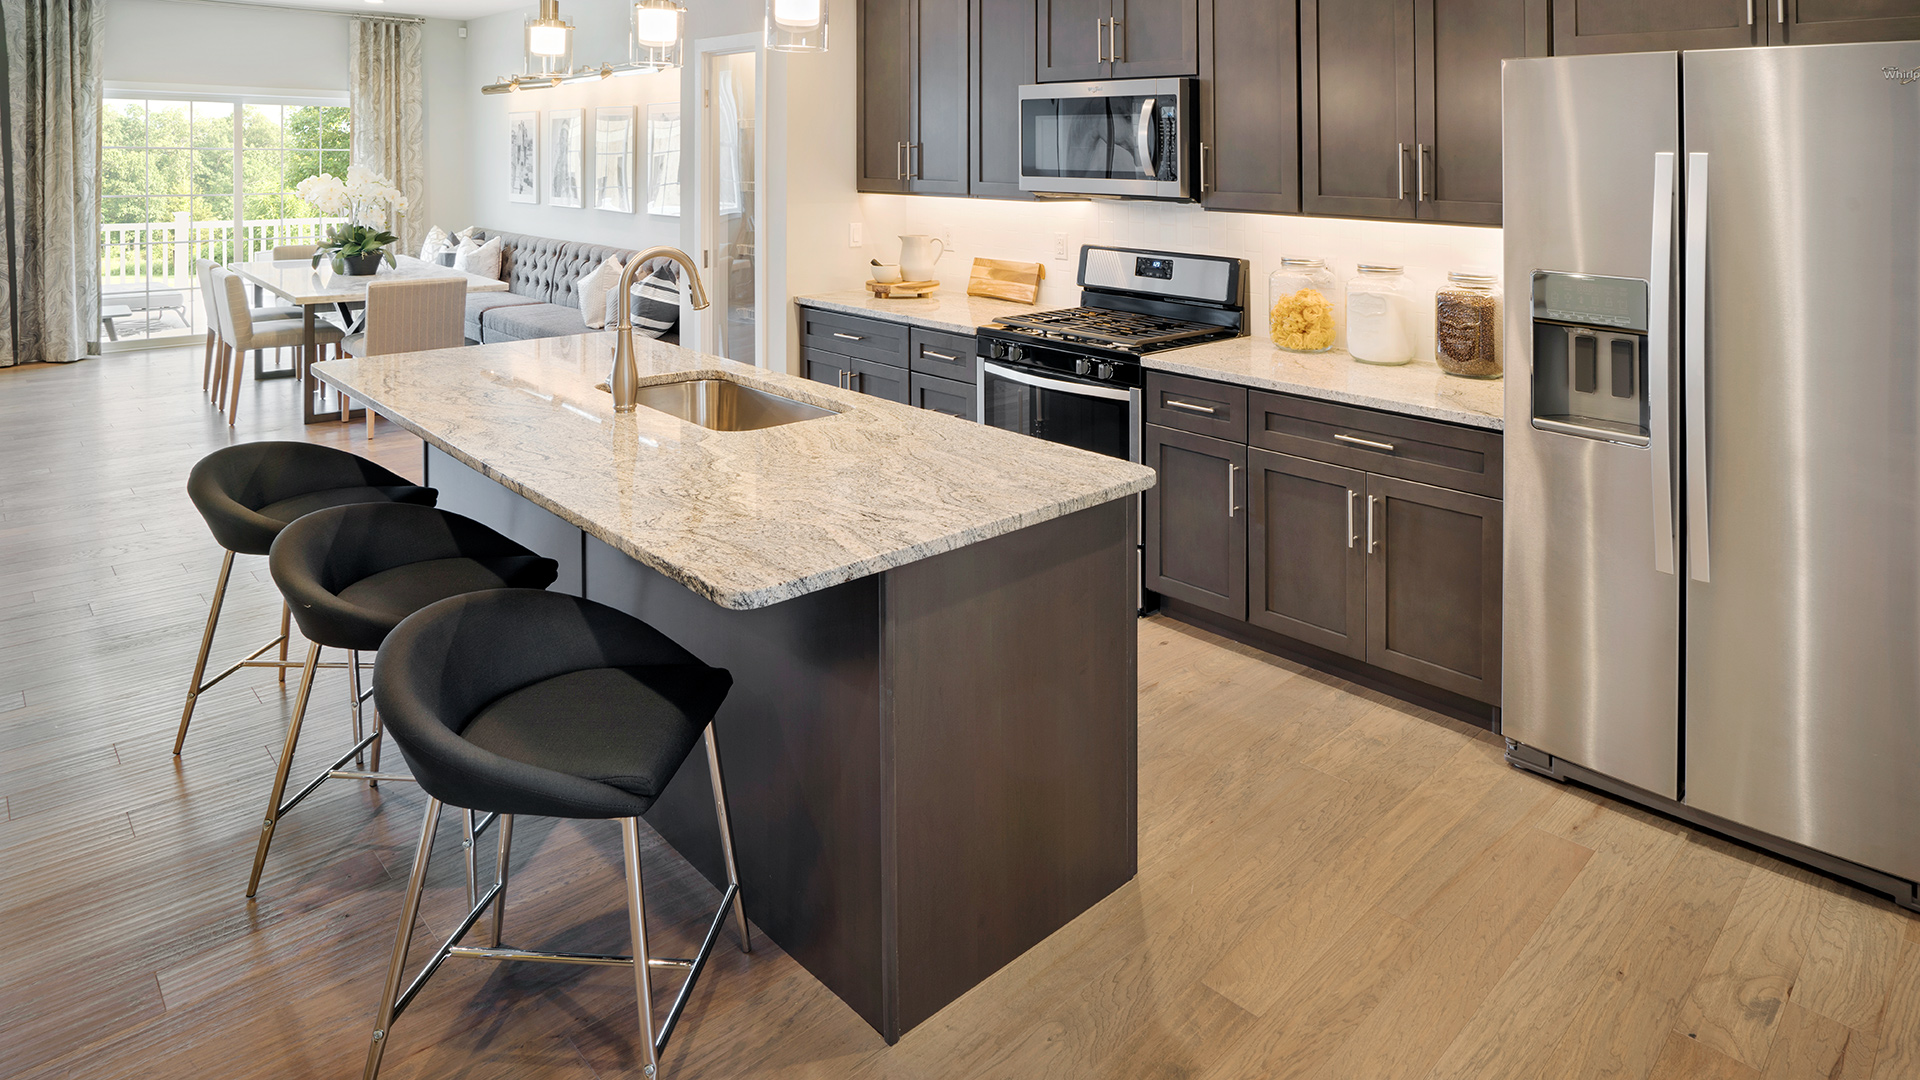 Colmar PA Townhomes for Sale | Walnut Creek at Montgomeryville